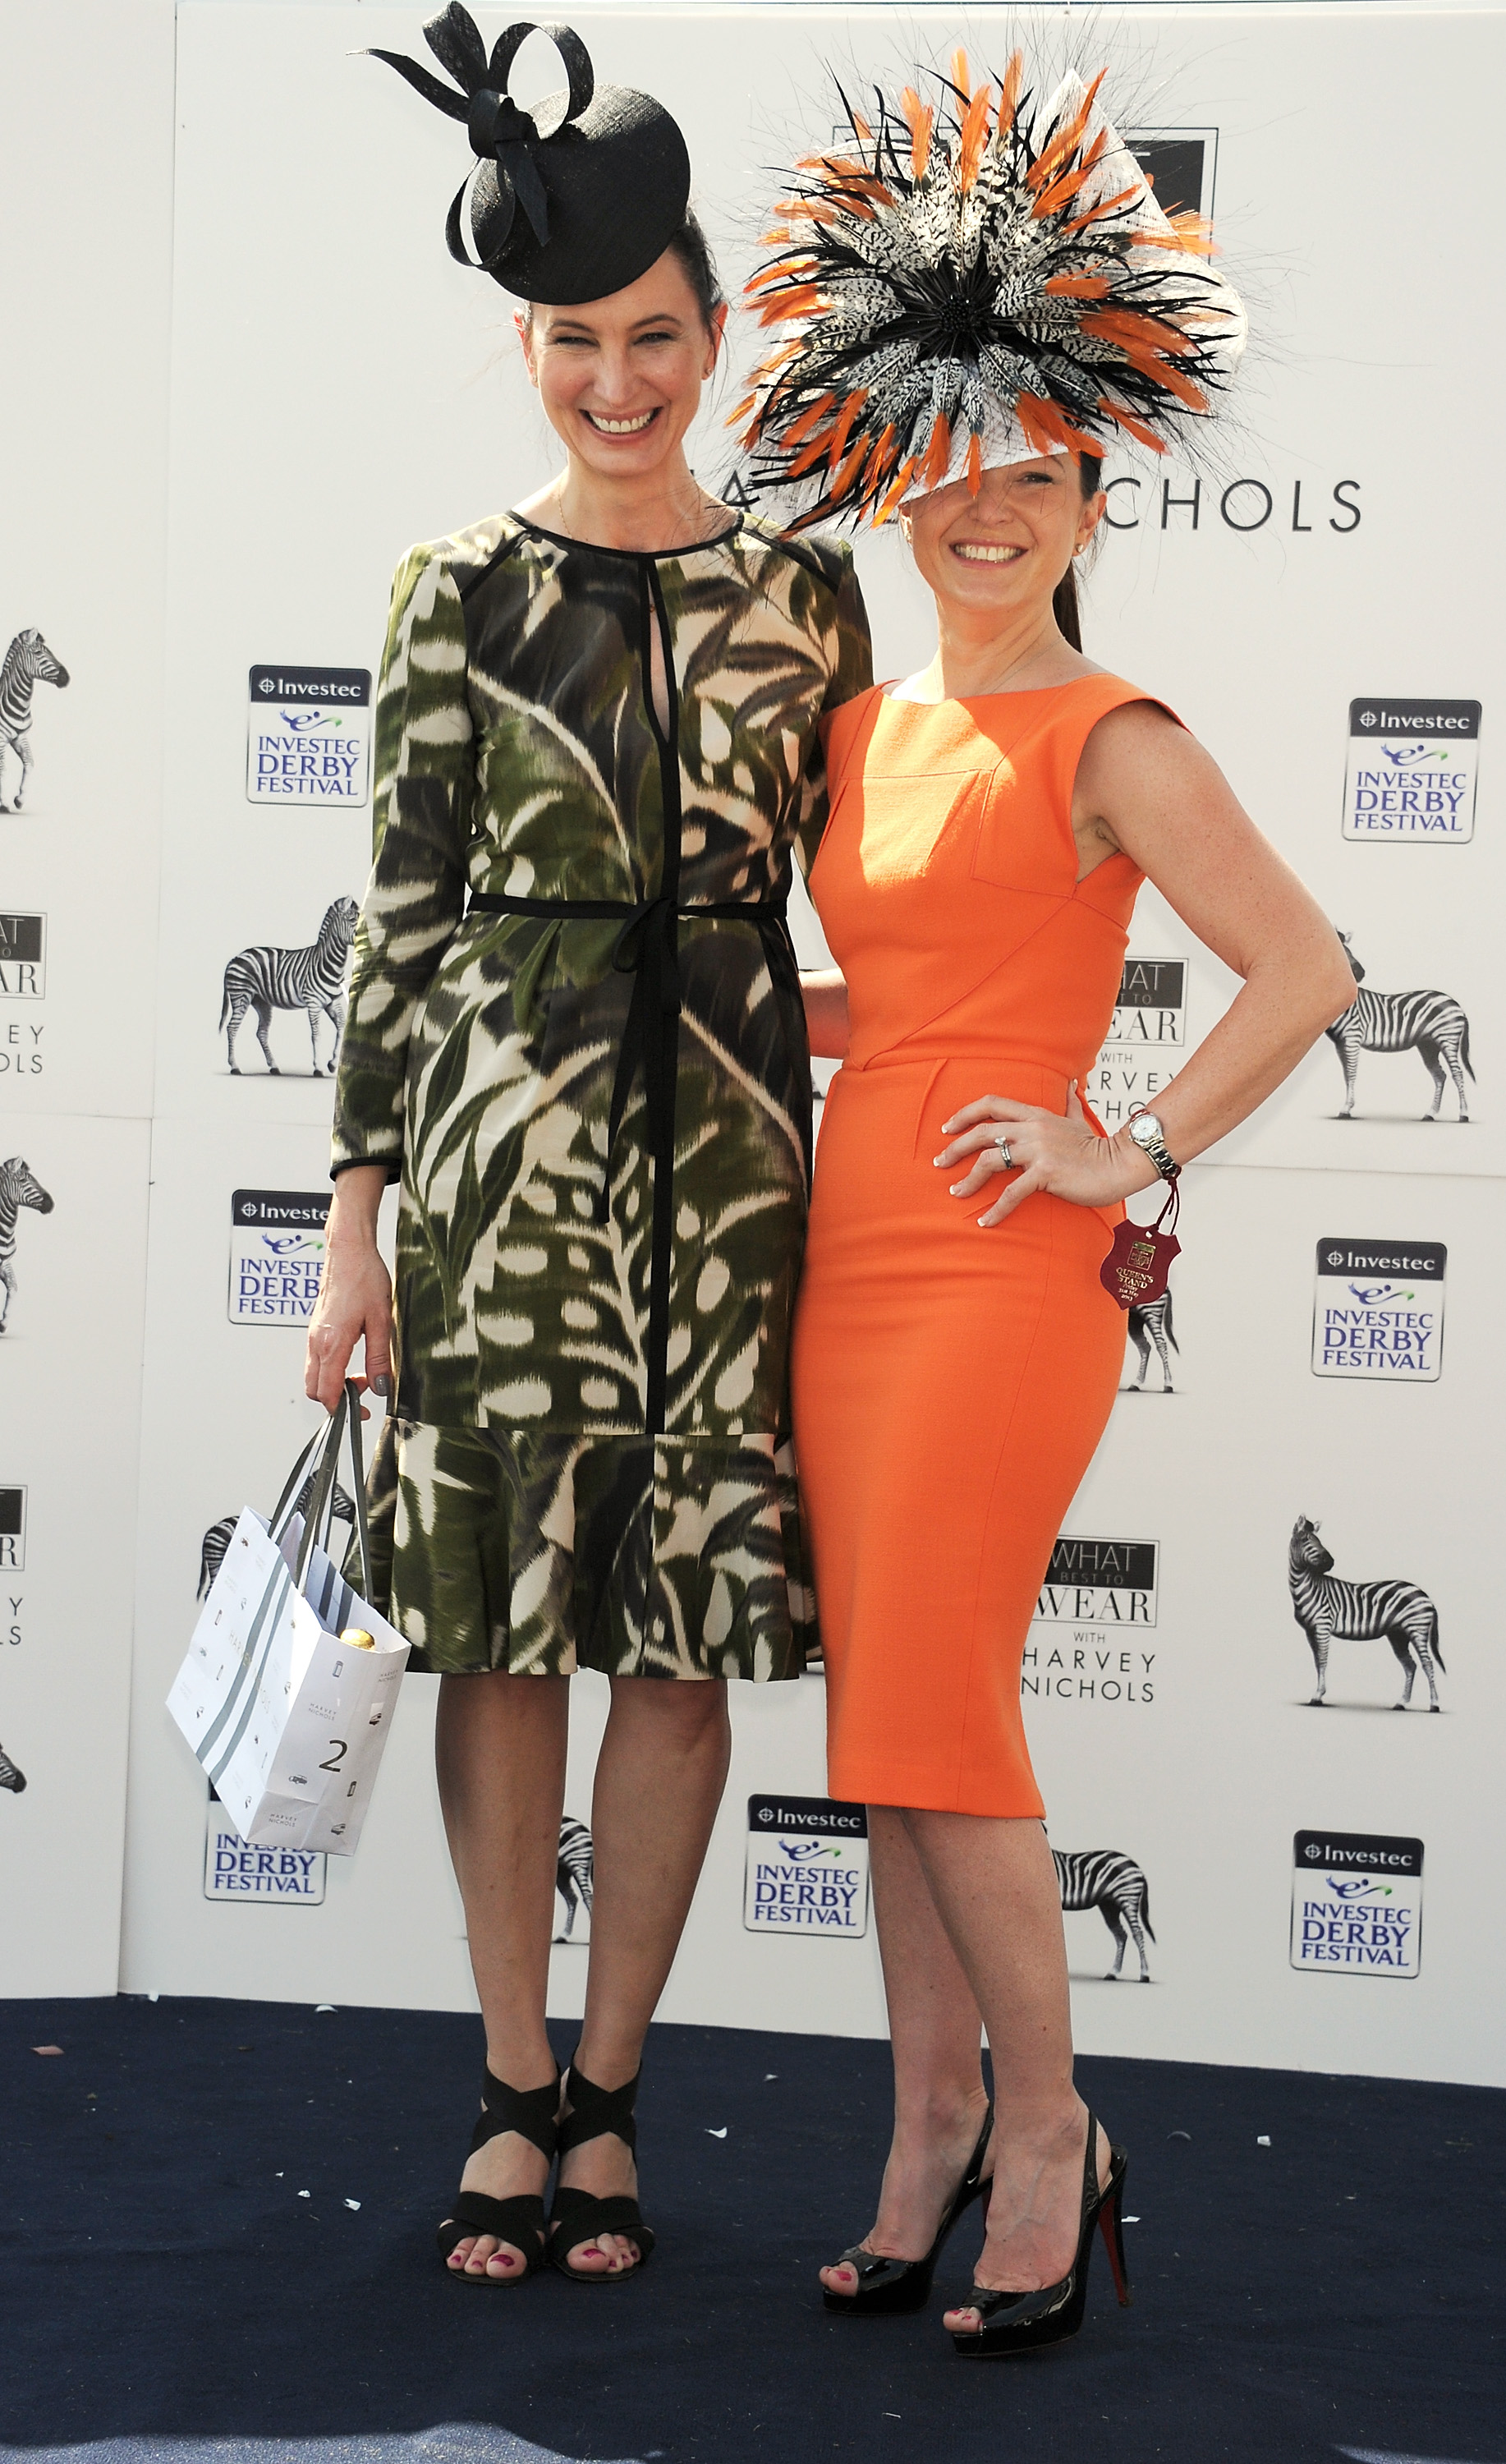 2013 What Best to Wear winner Leigh Johson (left) with Paula Reed from Harvey Nichols.